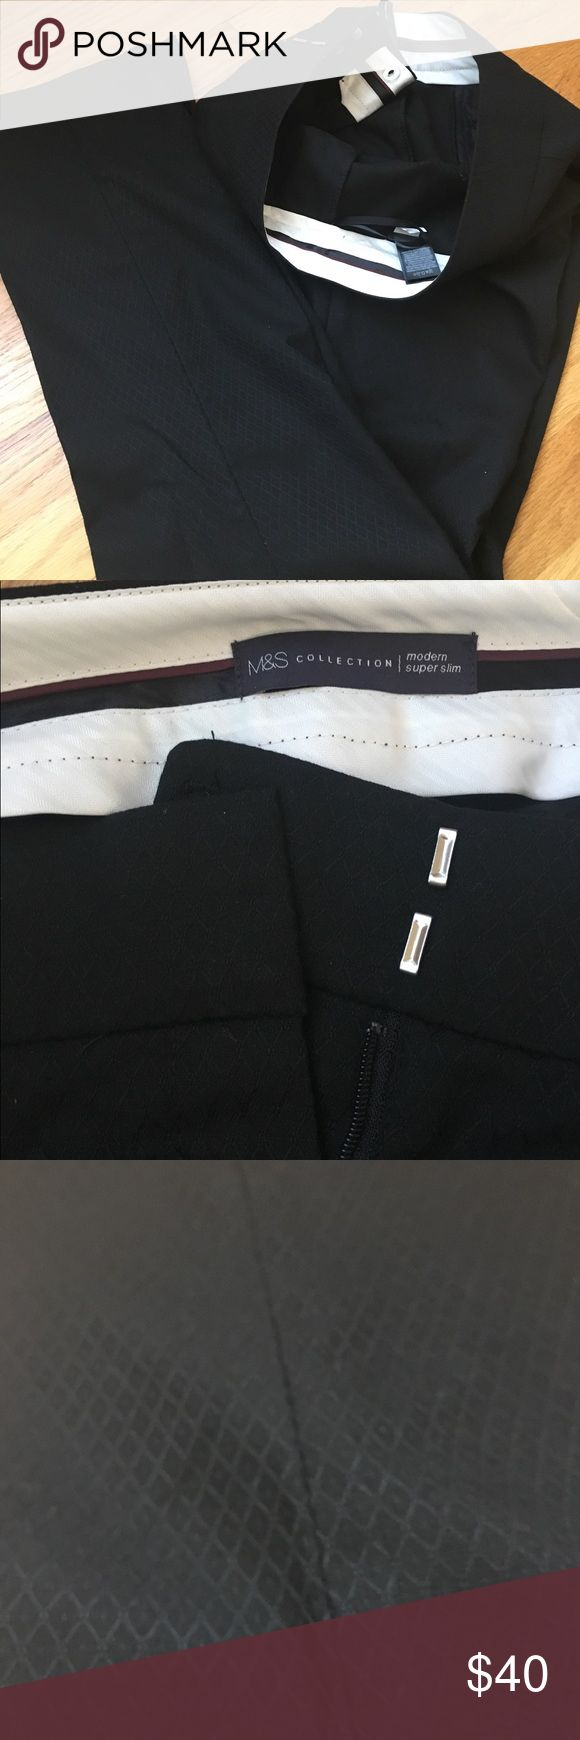 """Sophisticated black dress pants Nevertheless she persisted - and so will you in these beautiful 'super slim' dress pants. Diamond pattern (see picture). 🇬🇧12 🇺🇸8. Measurements: waist 16.5"""". Inseam 30.5"""". Marks & Spencer Pants Trousers"""